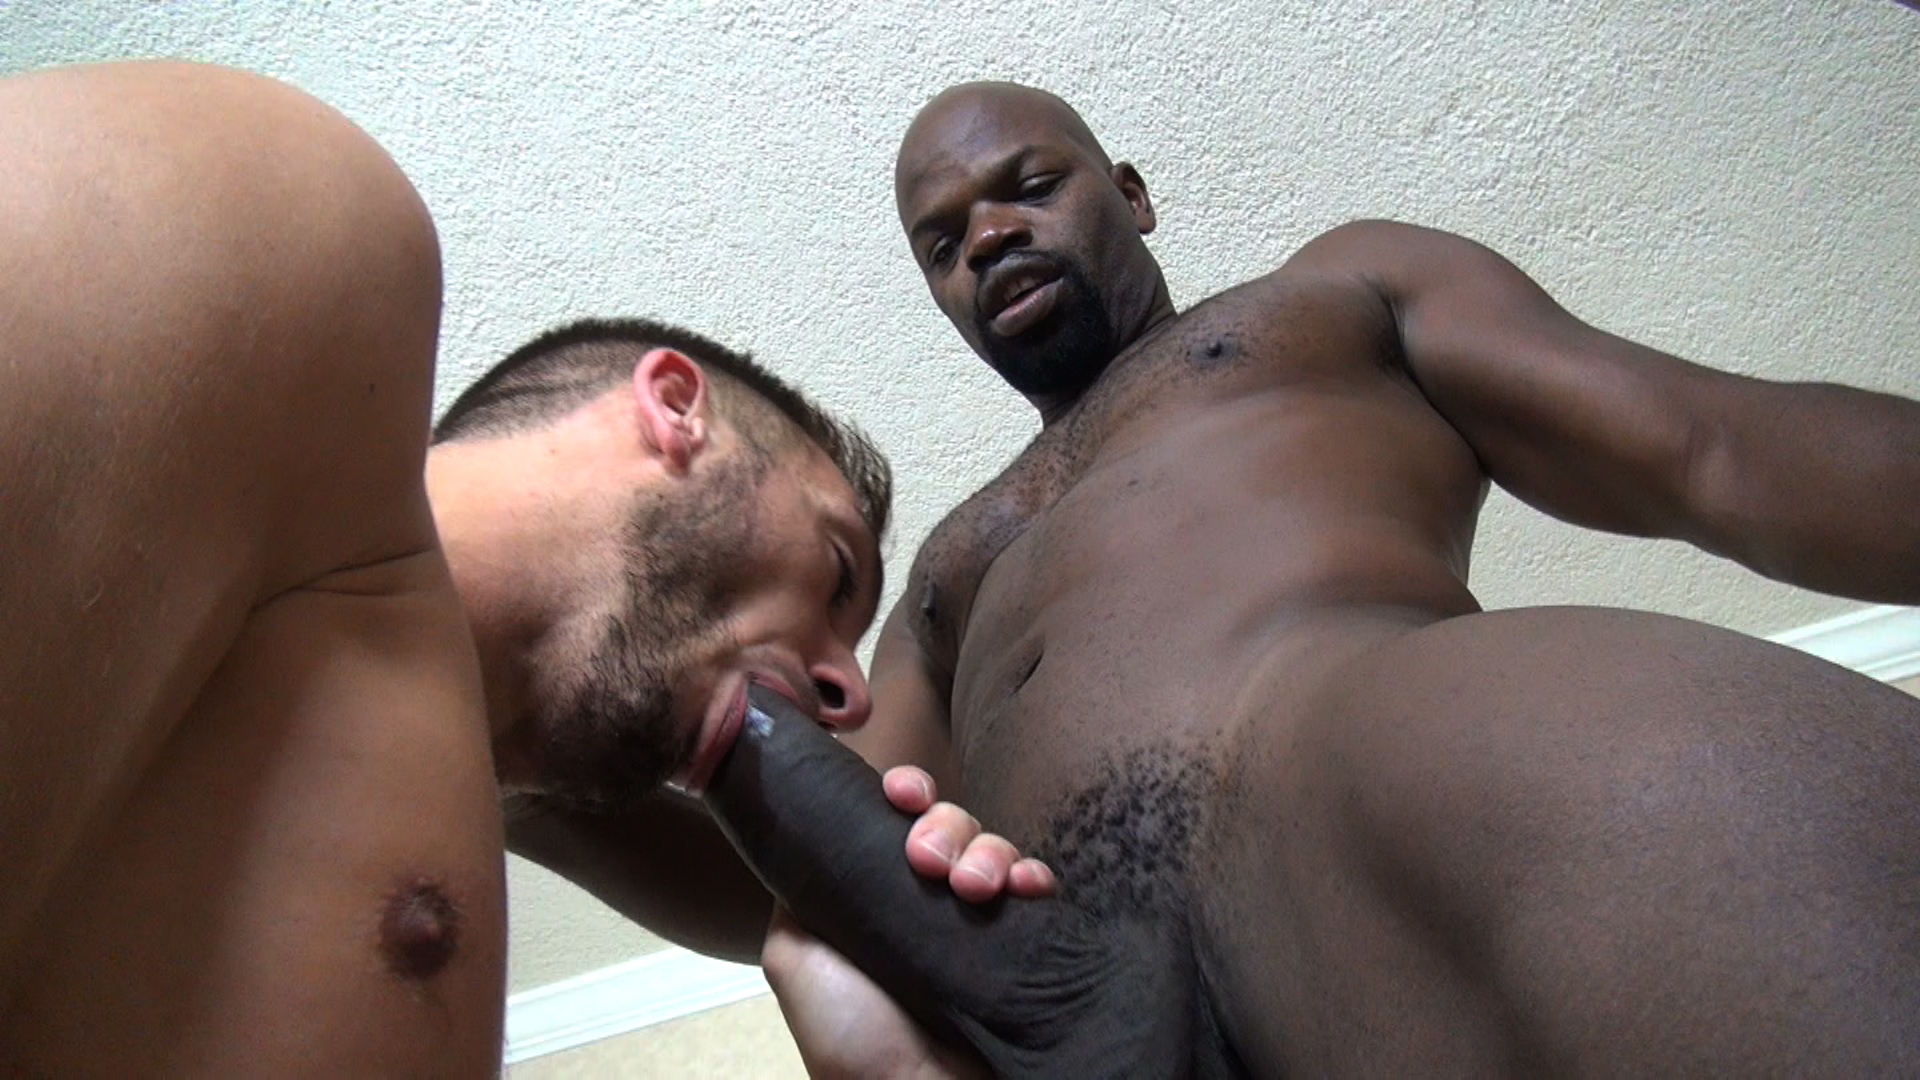 from Ashton interracial gay videos free